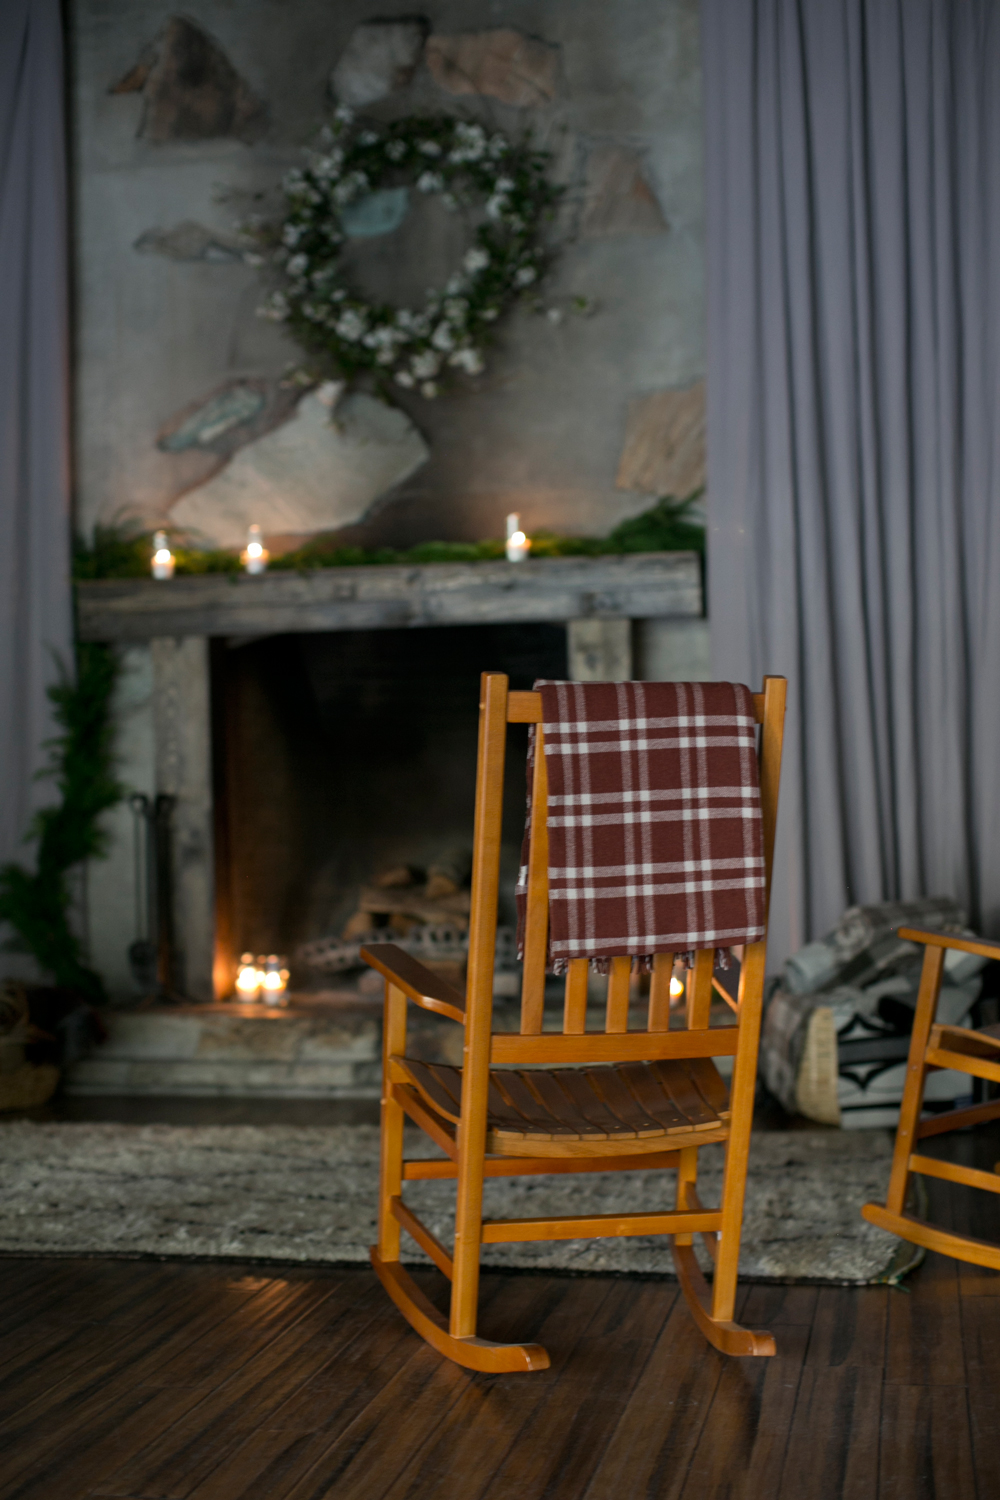 rocker with a Pendleton throw by the fireplace